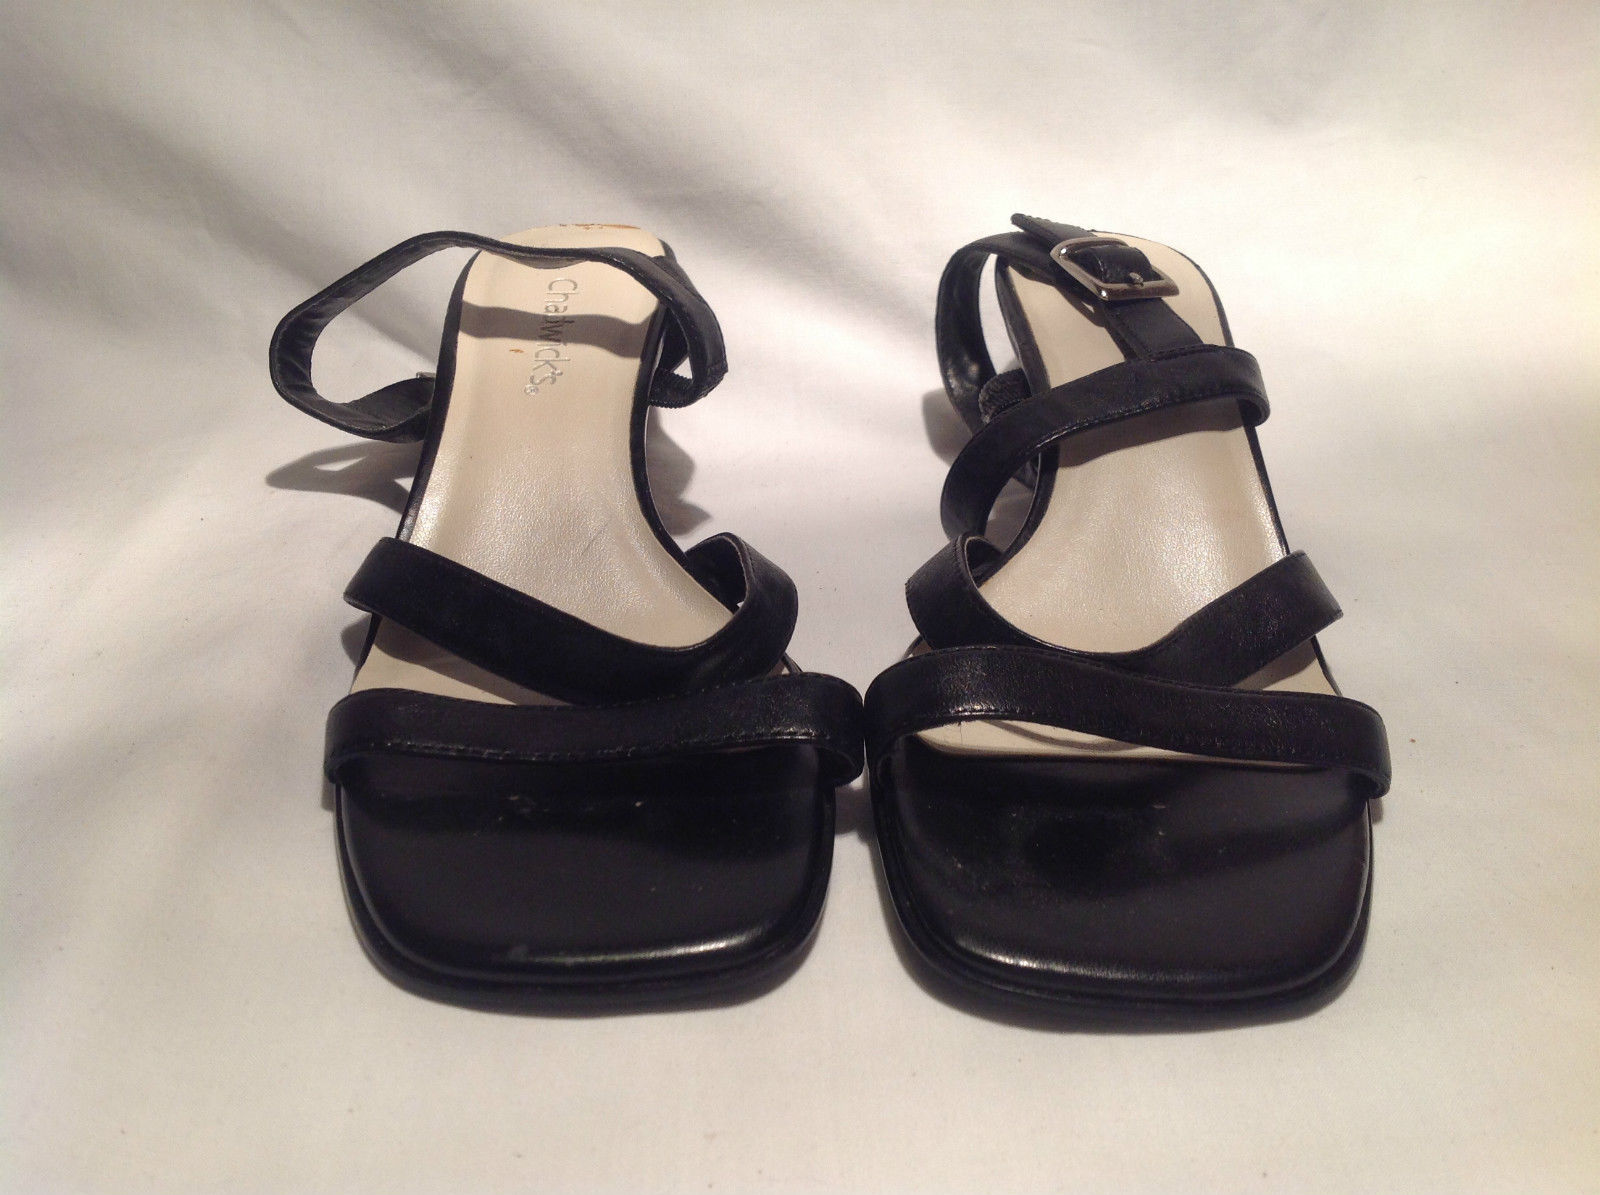 Chadwicks Strapped Black Heels Open Toe and Heel Leather Upper Size 6M